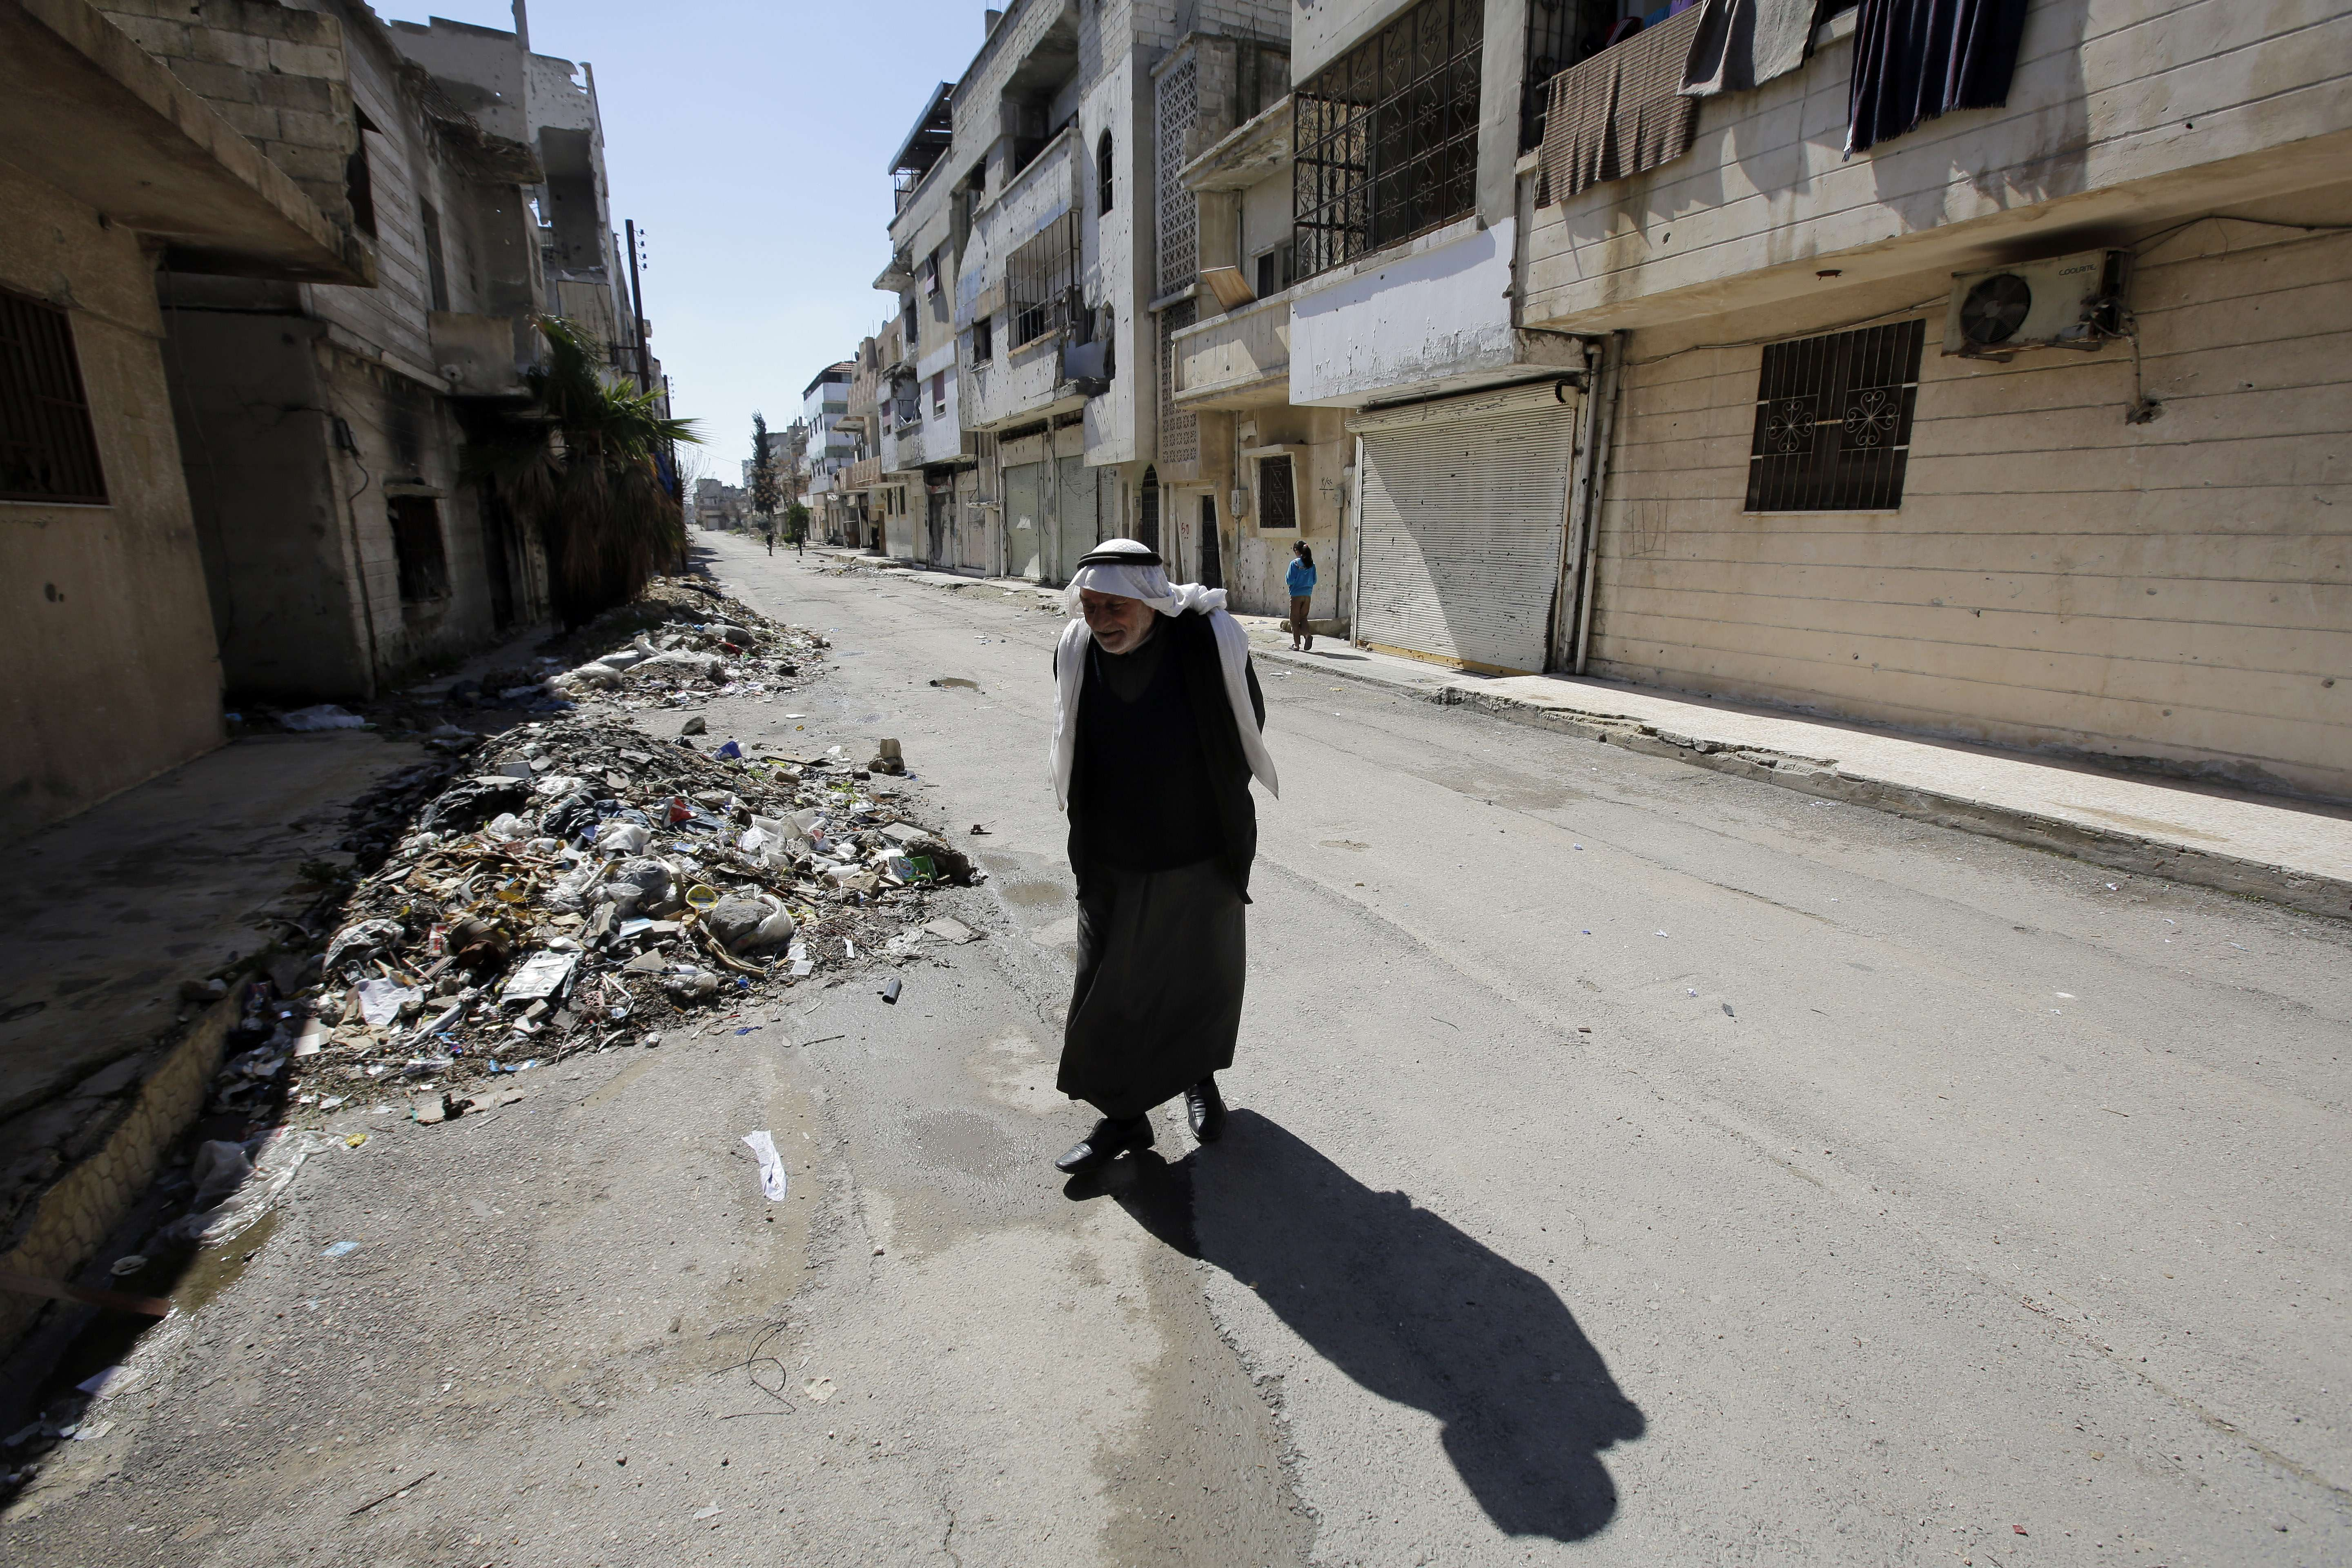 A file picture taken on March 15, 2014 shows a Syrian man walking in the once rebel-held neighbourhood of Baba Amro in the central Syrian city of Homs. Syria's government and rebels have reached a deal under which opposition fighters holed up in besieged parts of Homs city will withdraw during a ceasefire, an NGO said on May 2.  (AFP PHOTO/JOSEPH EID)